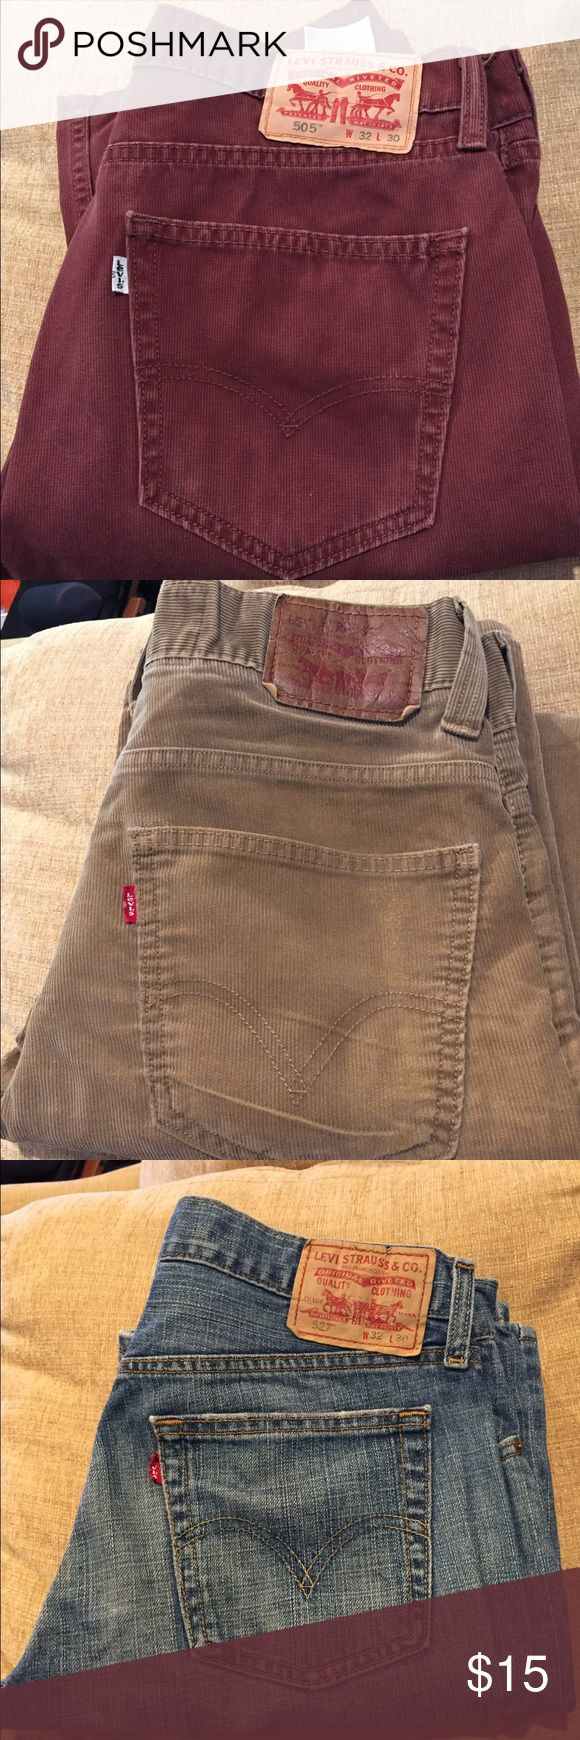 Used Levis Jeans for Men Used Levis jeans for men in good condition Levis Jeans Relaxed